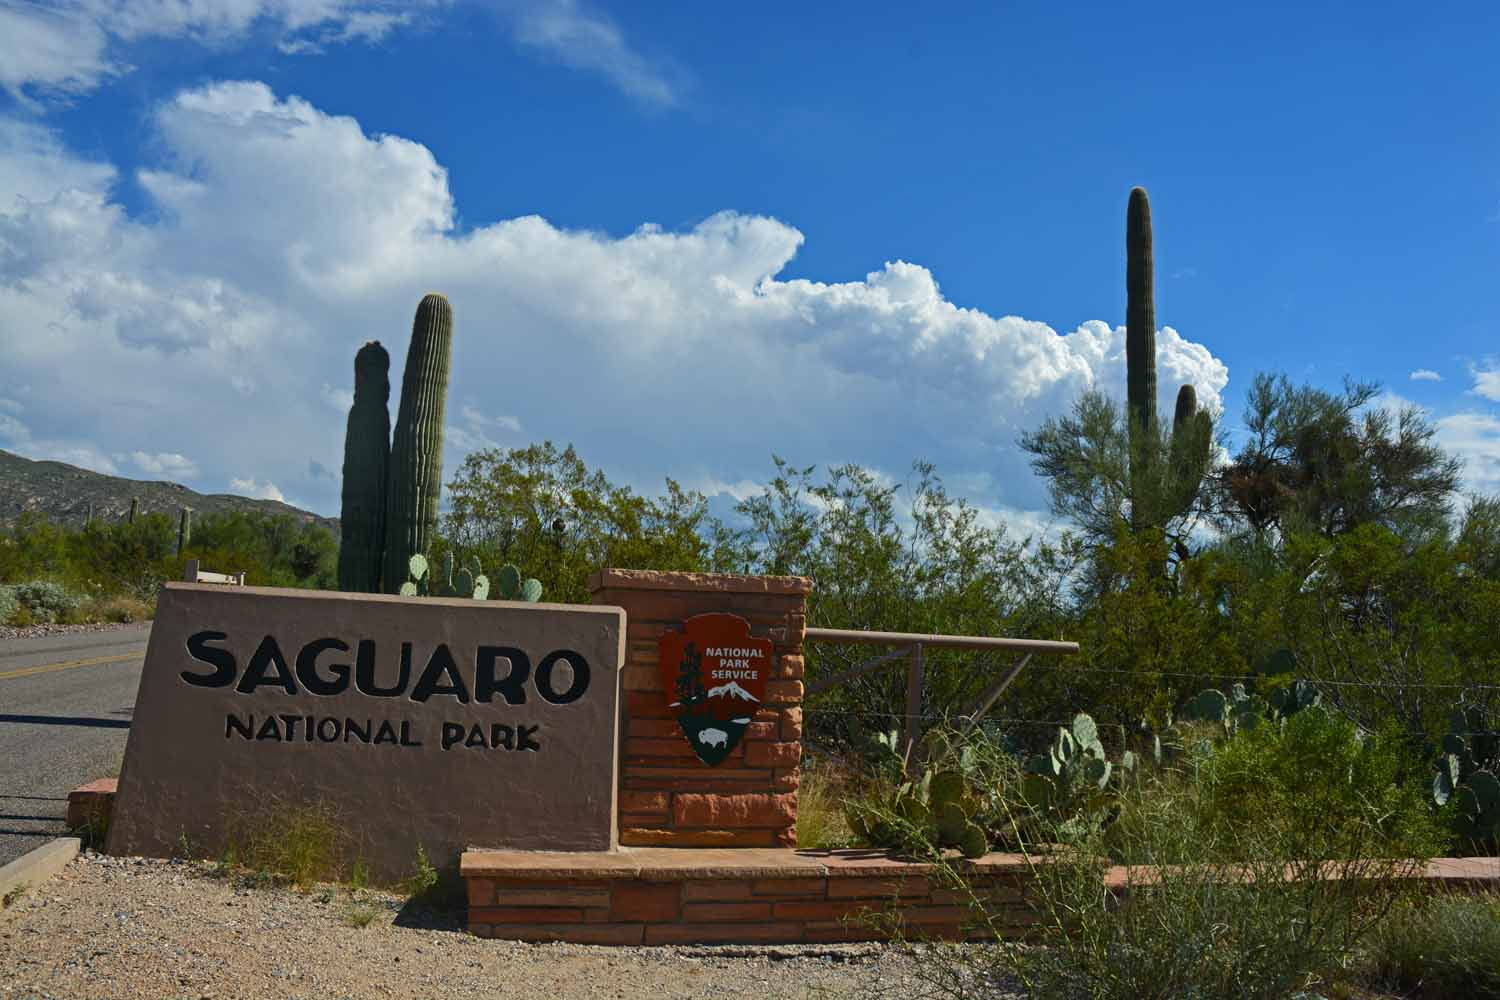 Saguaro National Park at San Antonio is a great place to learn about cactus...